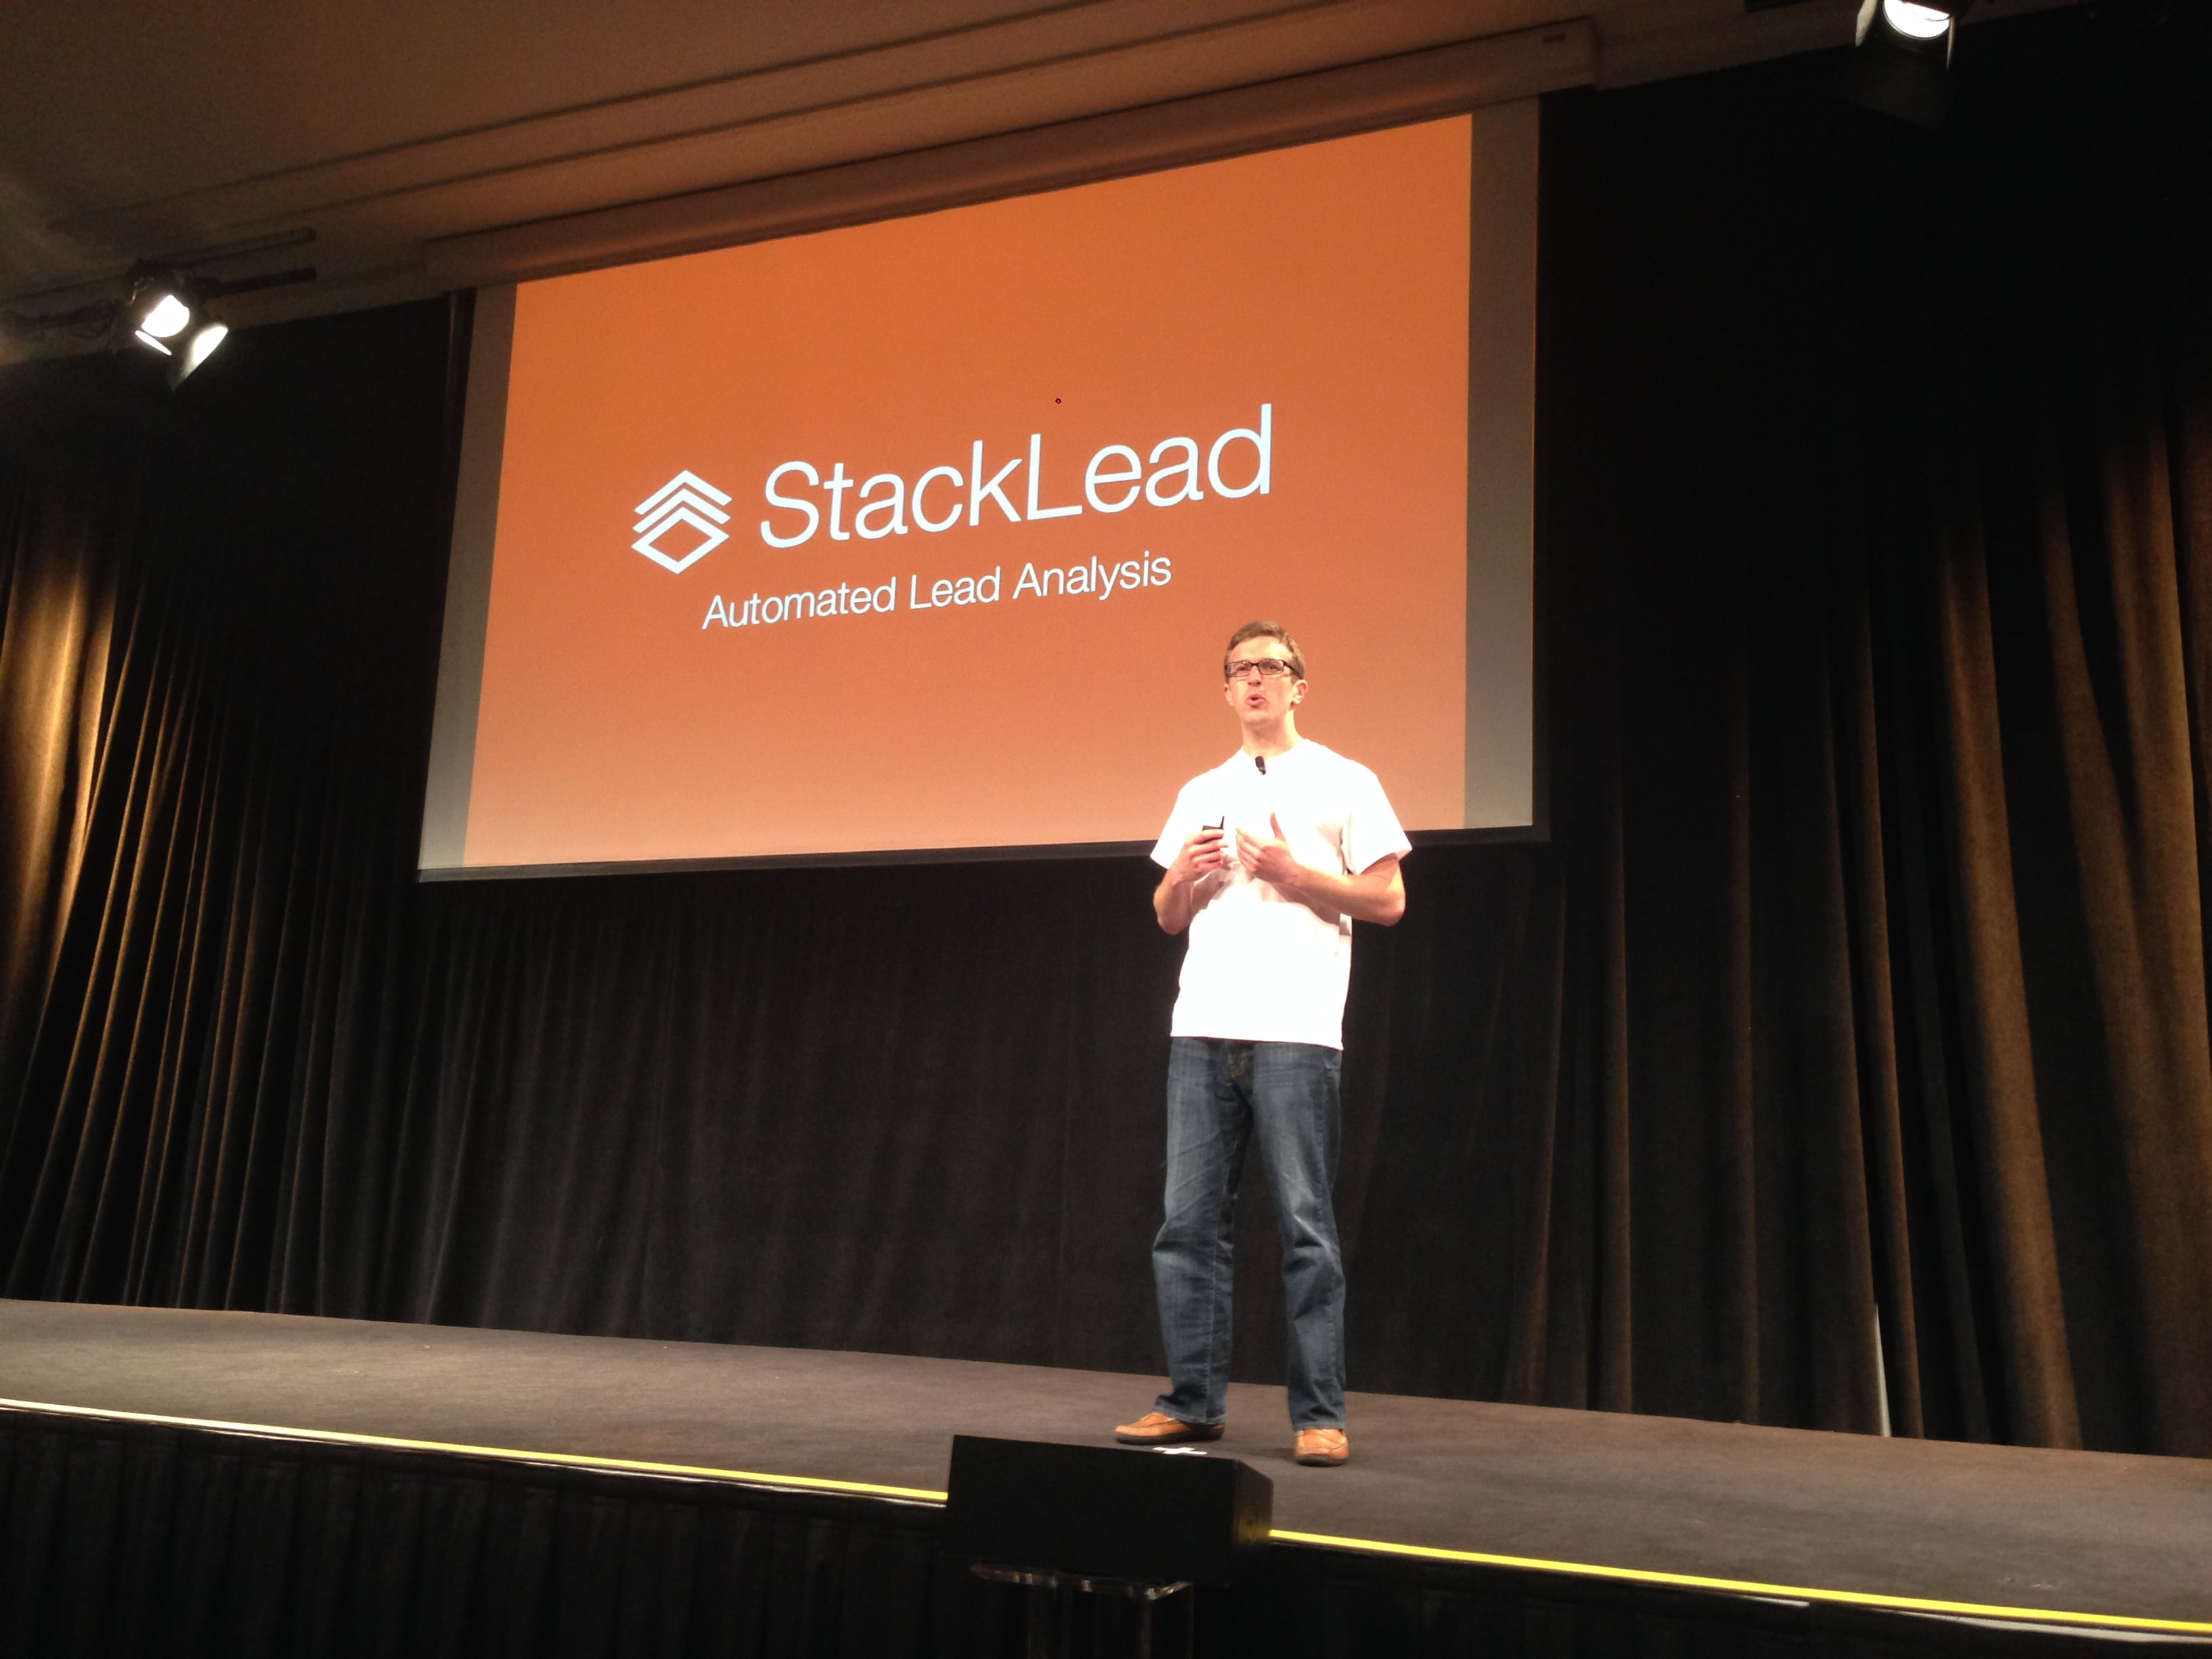 StackLead